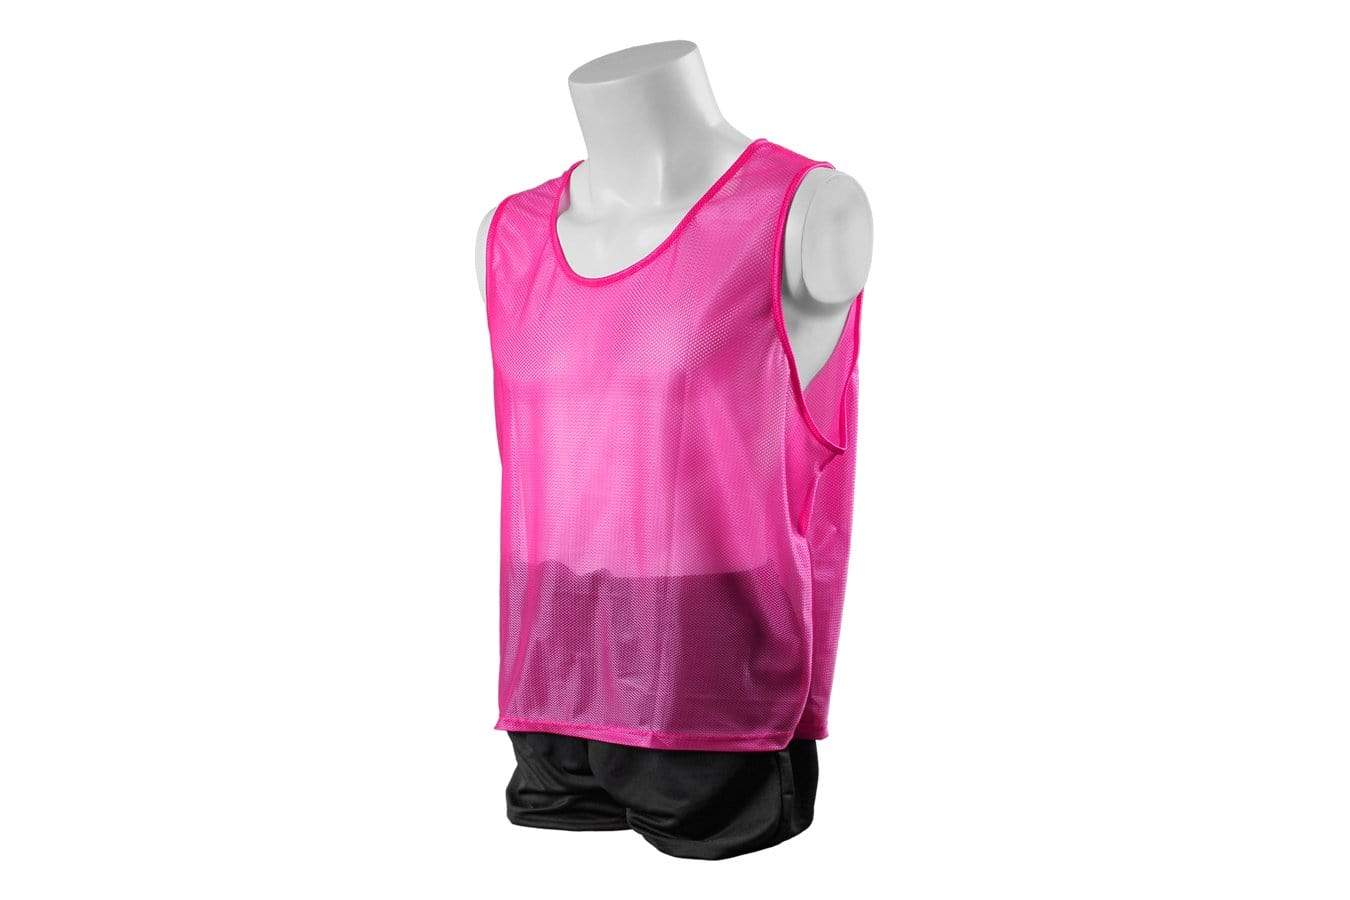 Deluxe Rugby Training Vest in Pink